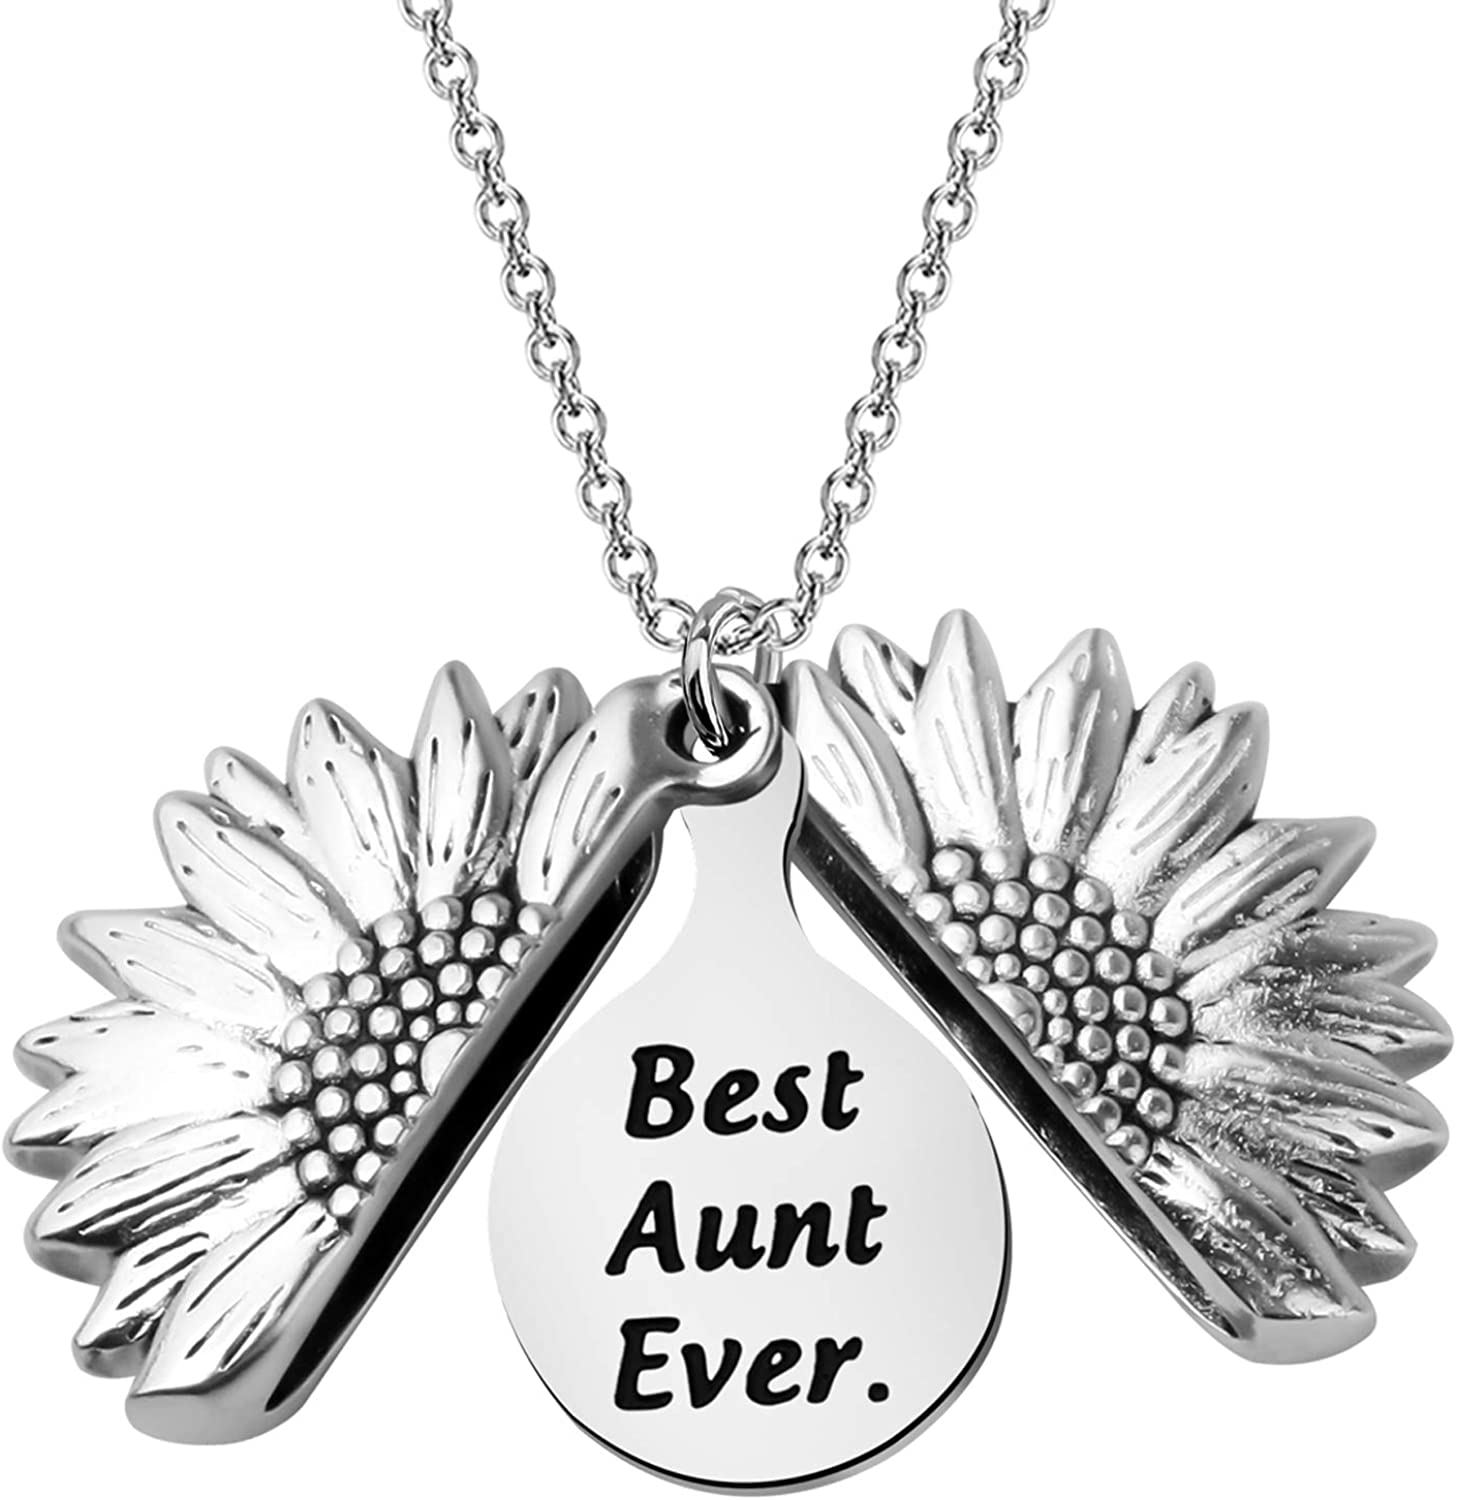 BEKECH Aunt Gift Best Ever A Sunflower Locket All items online shop free shipping Necklace